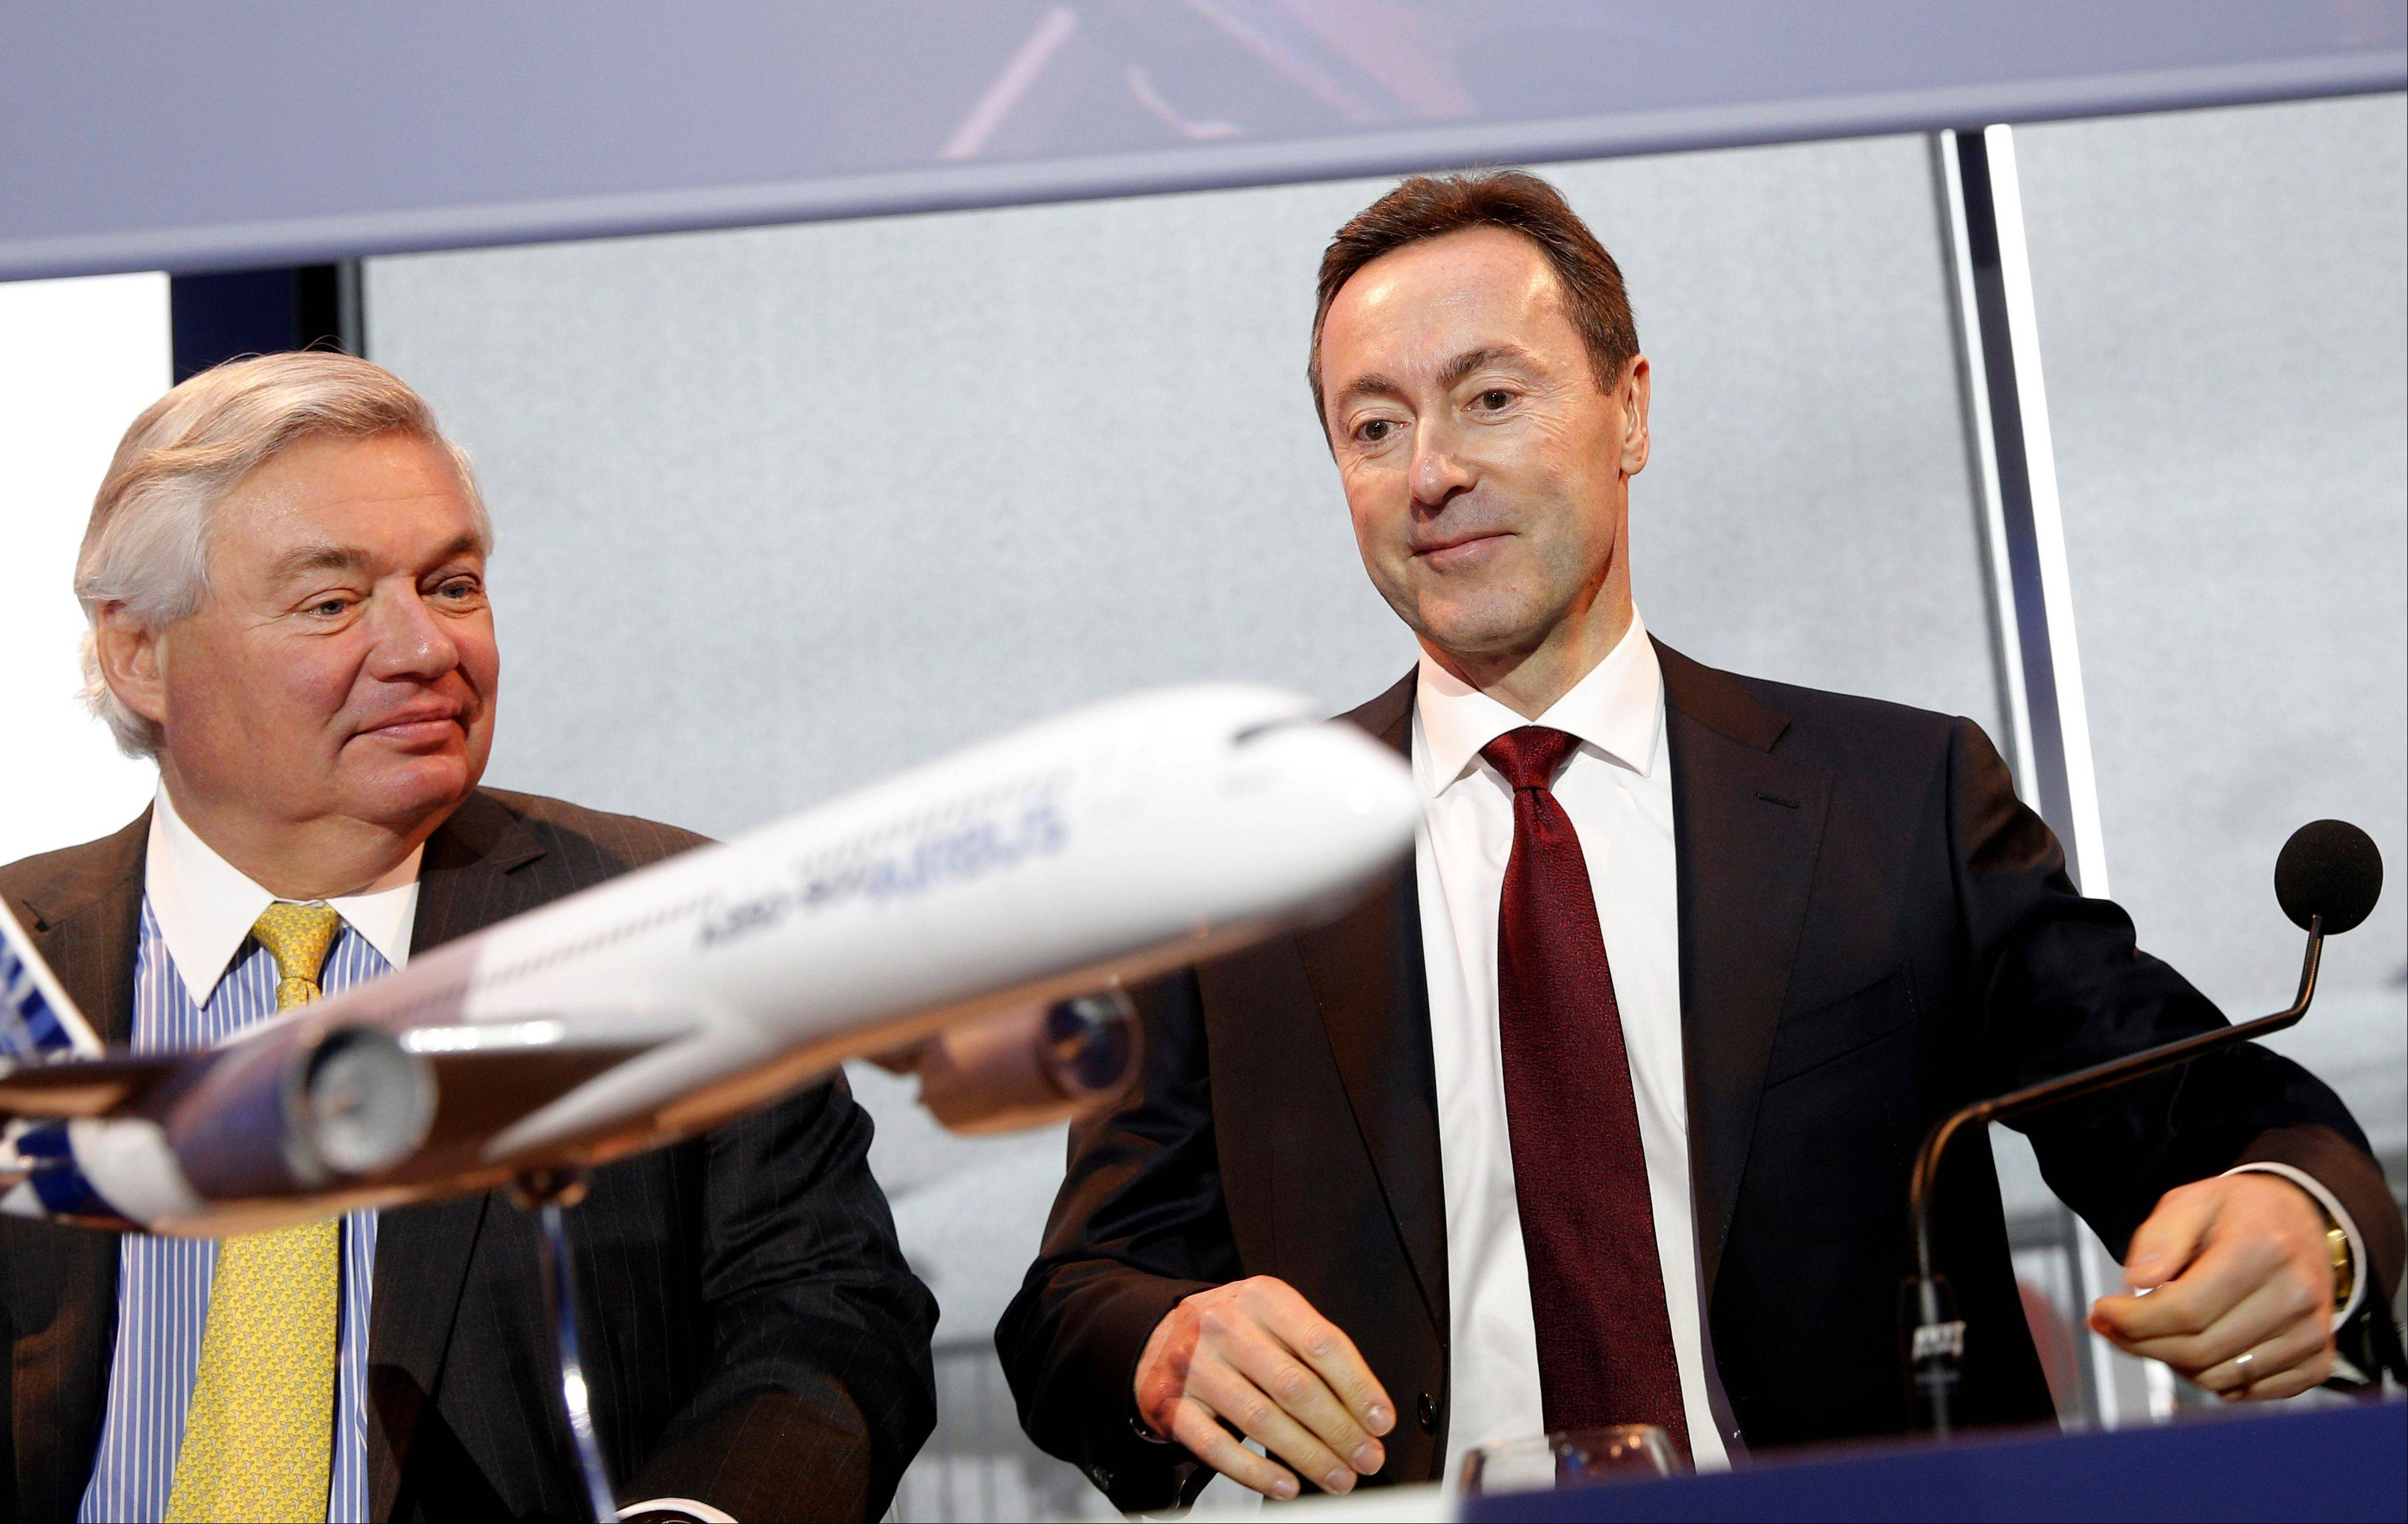 John Leahy, Chief Operating Officer Customers of Airbus, left, and Airbus CEO Fabrice Bregier, arrive for the annual news conference in Toulouse, southwestern France, Monday.